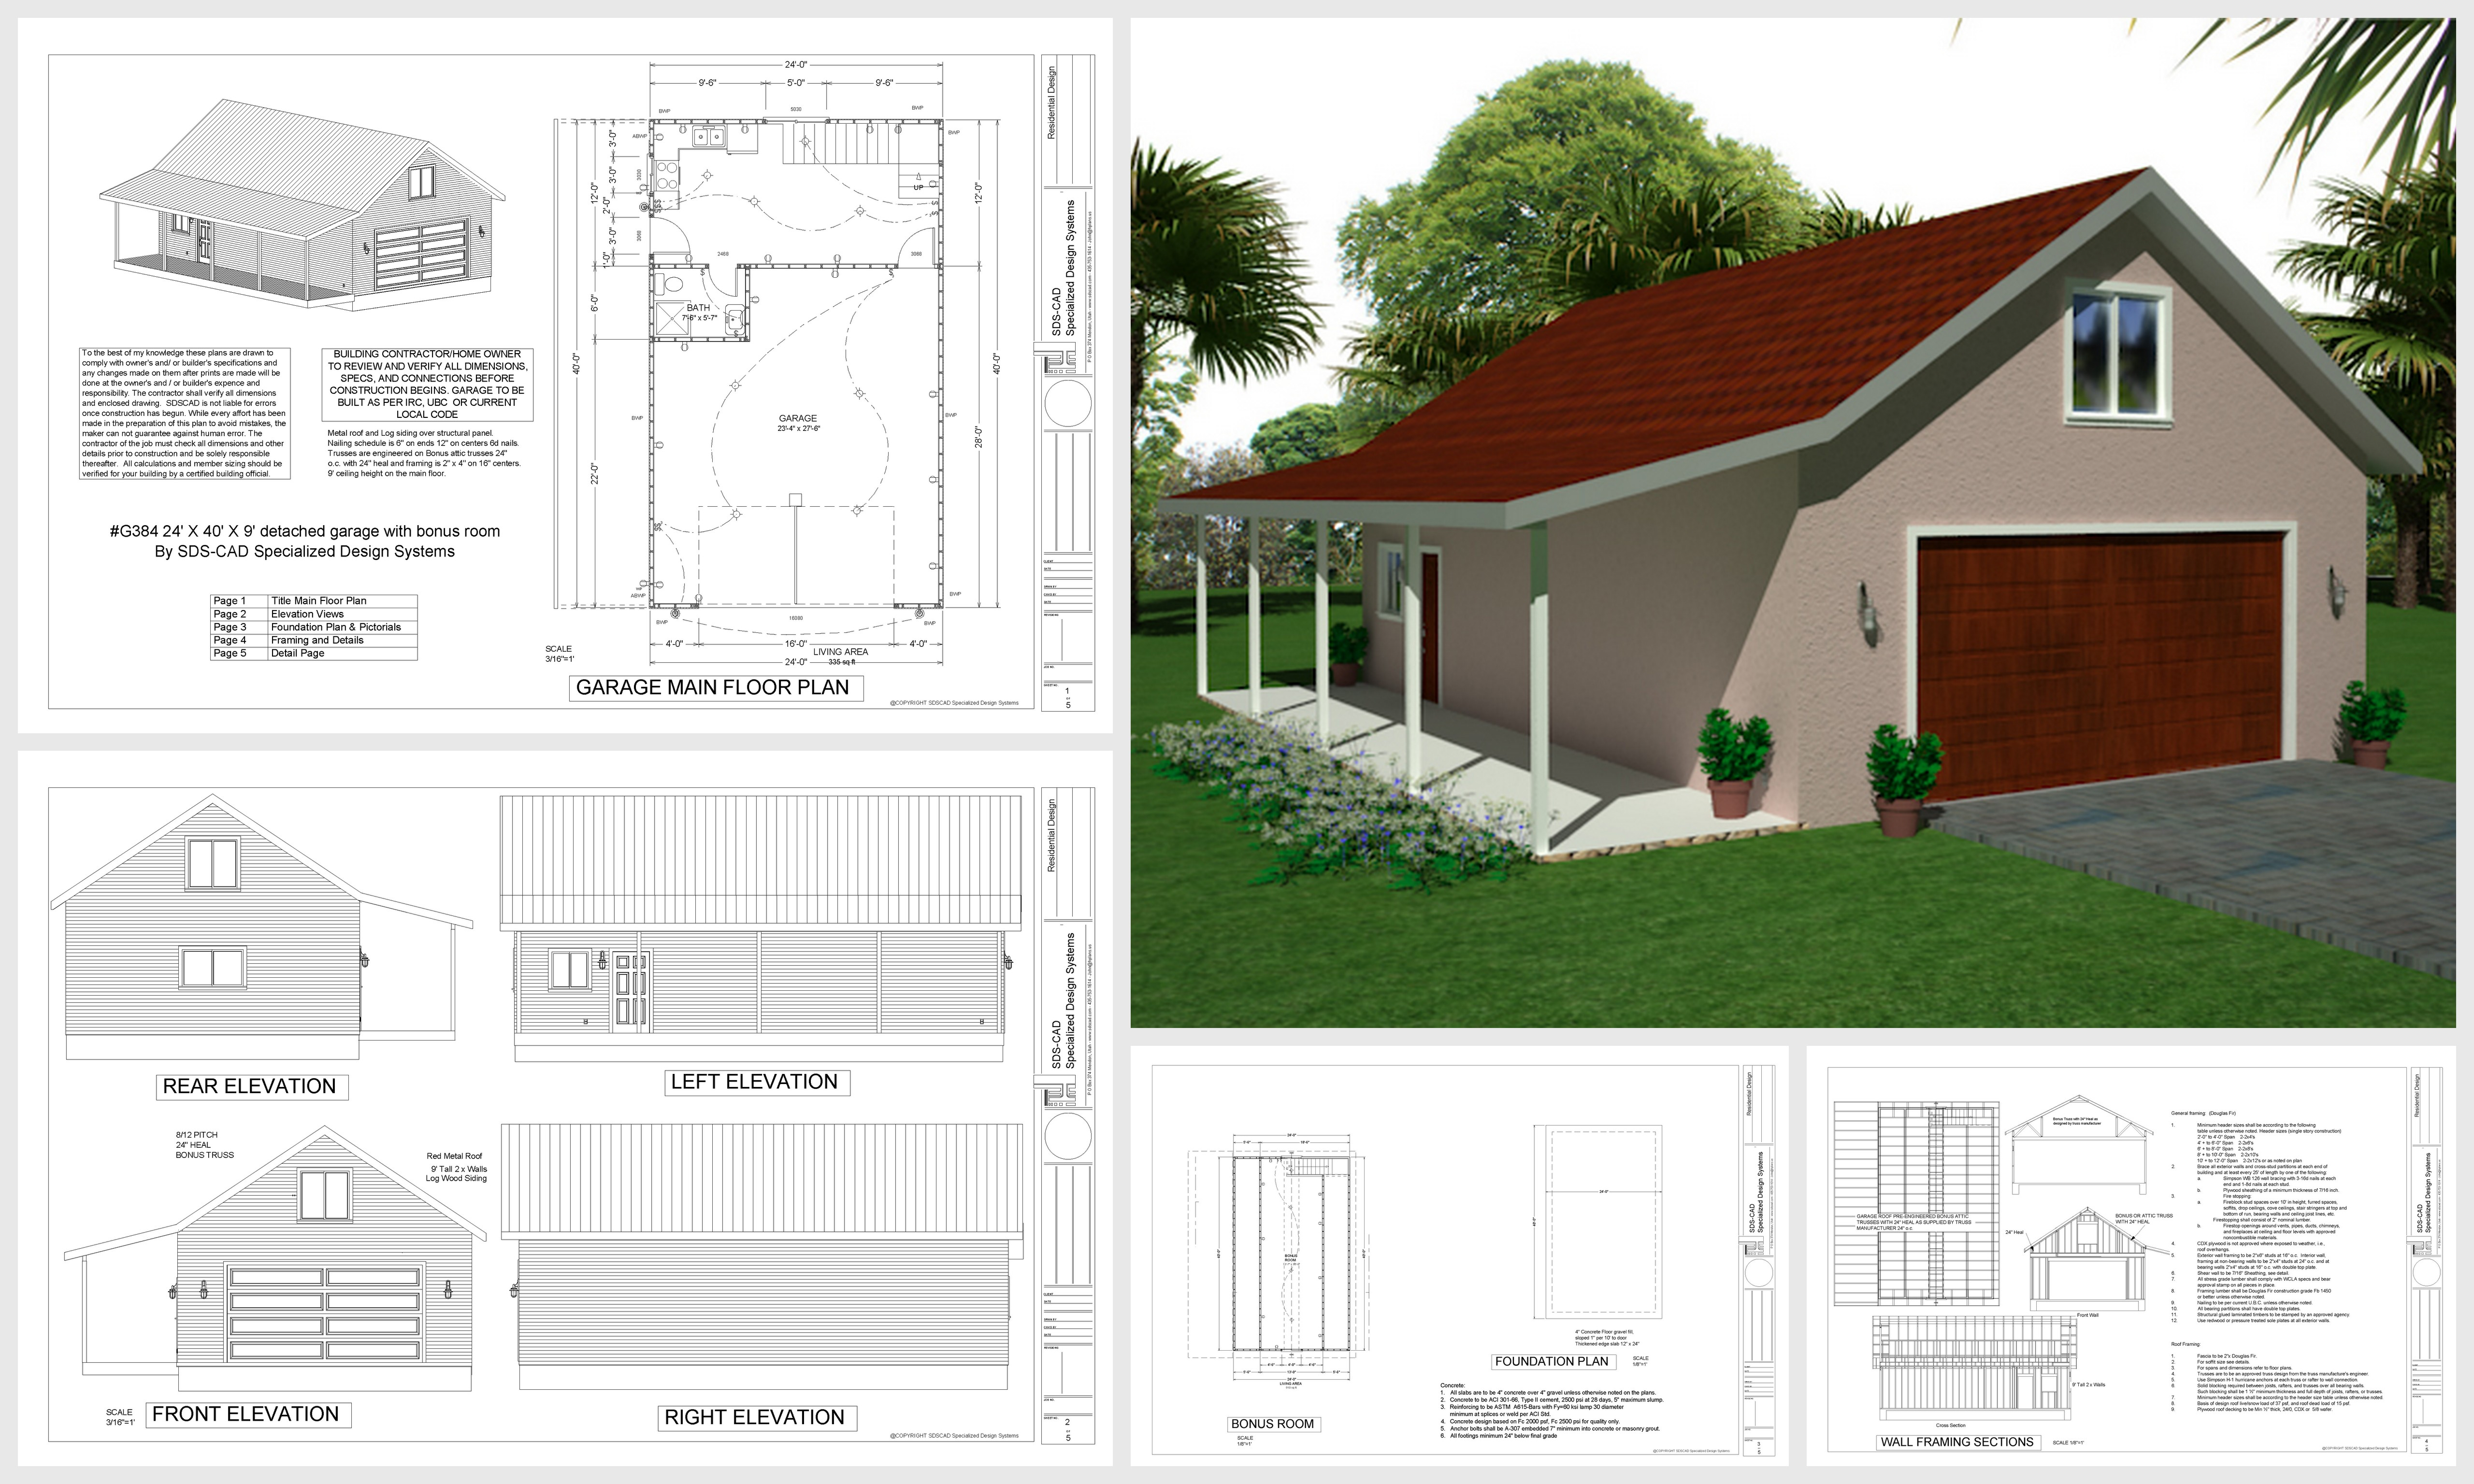 Superb 18 Free Diy Garage Plans With Detailed Drawings And Instructions Largest Home Design Picture Inspirations Pitcheantrous